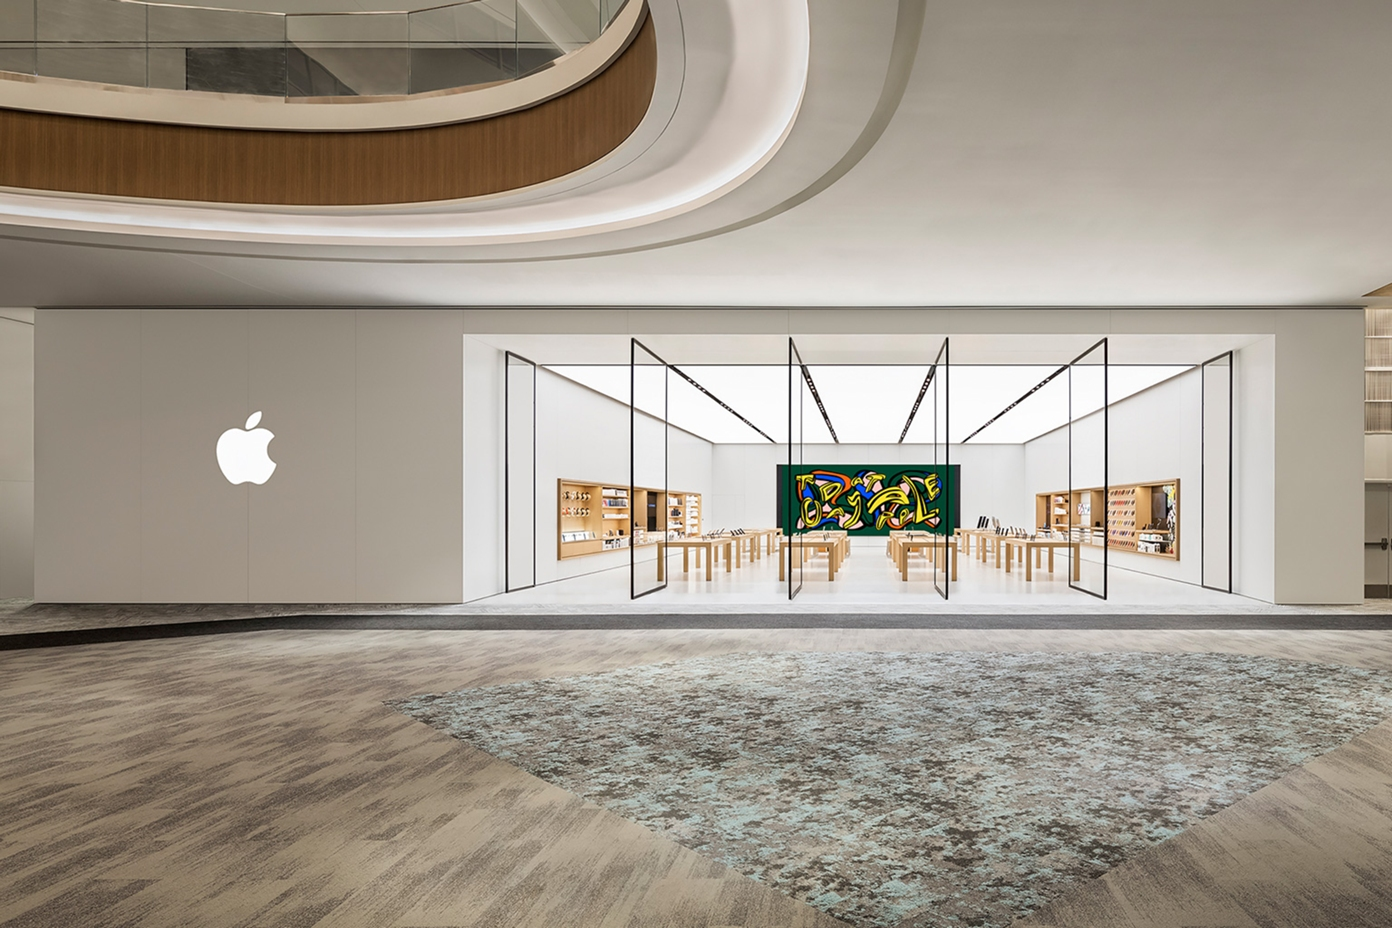 Apple's Says Its Retail Outlets Are Now Closed 'Until Further Notice'